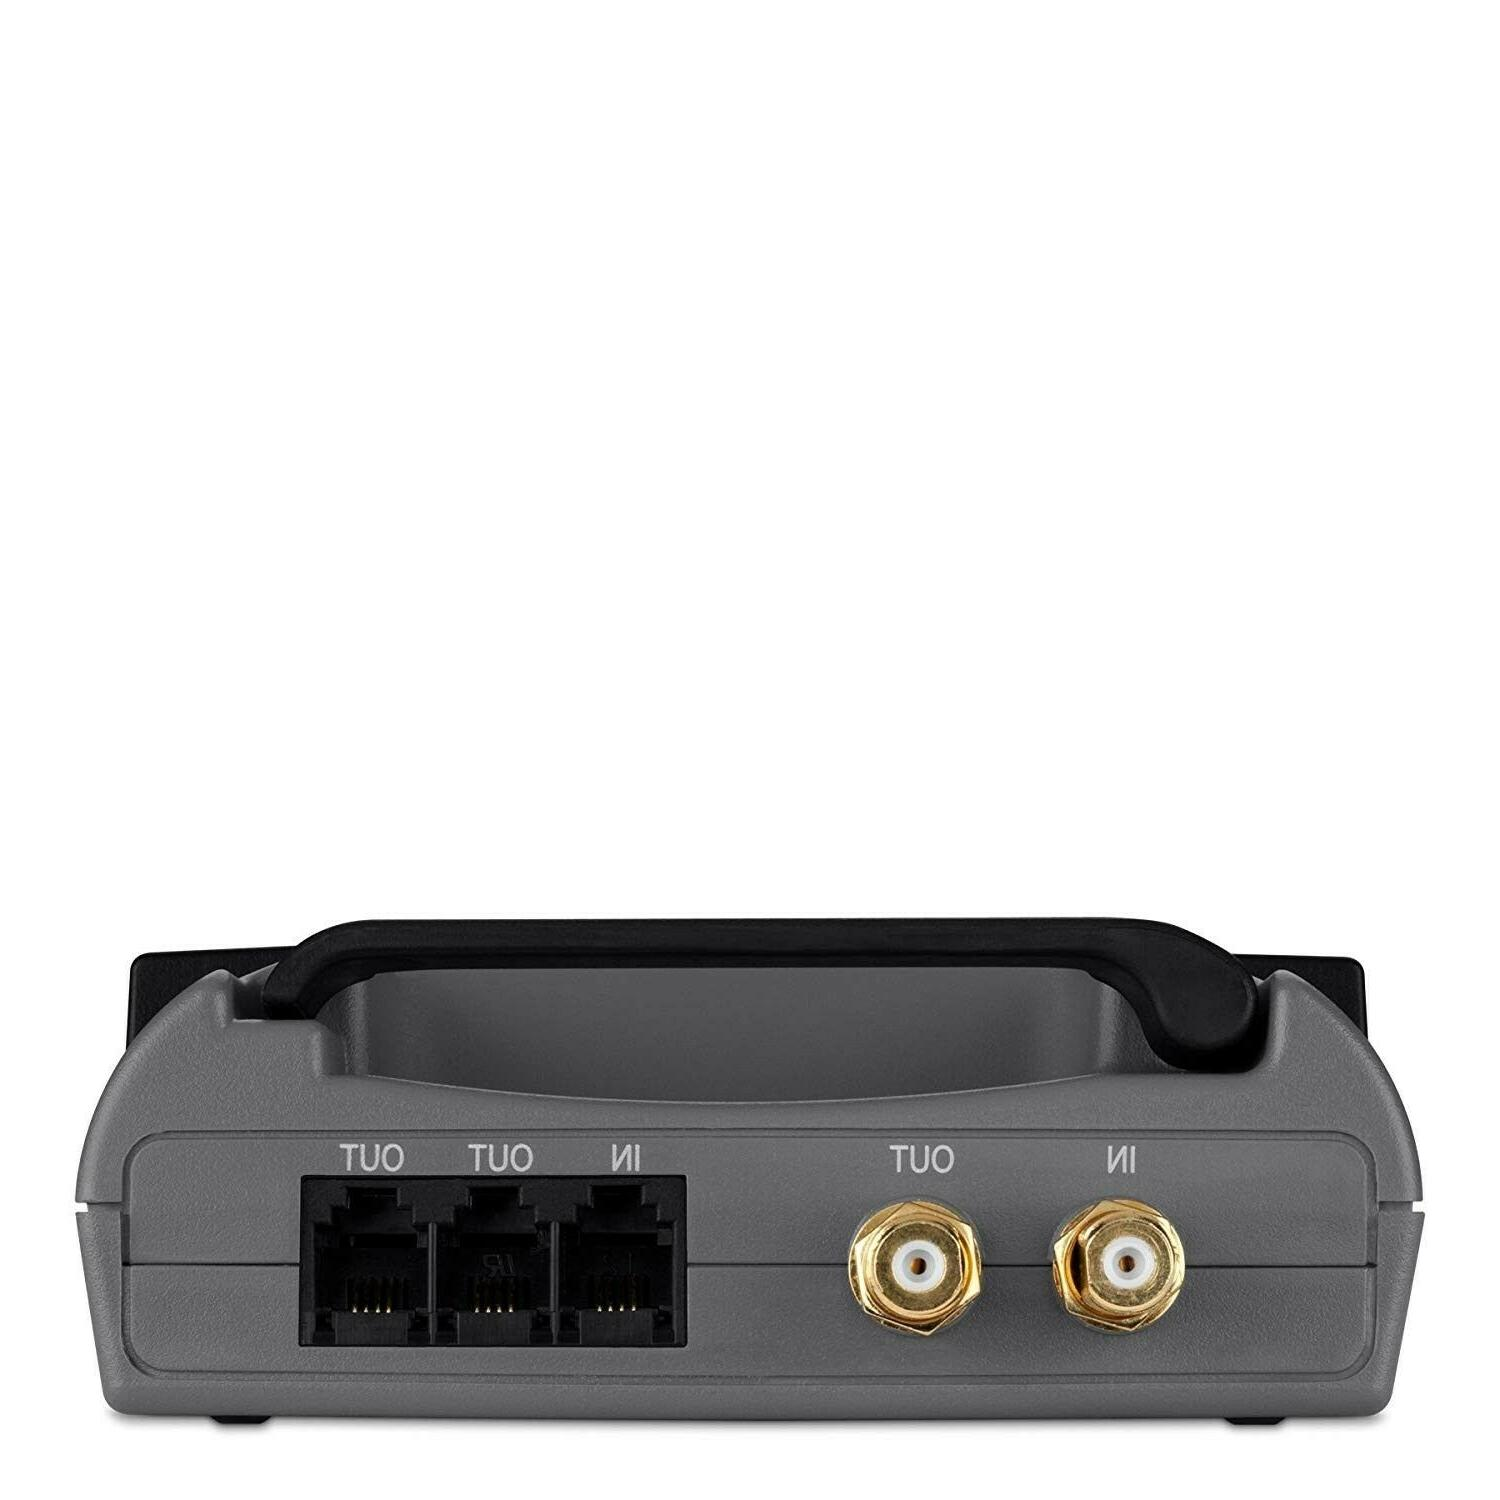 Belkin 12-Outlet Strip Surge Protector 8-Foot Power Cord